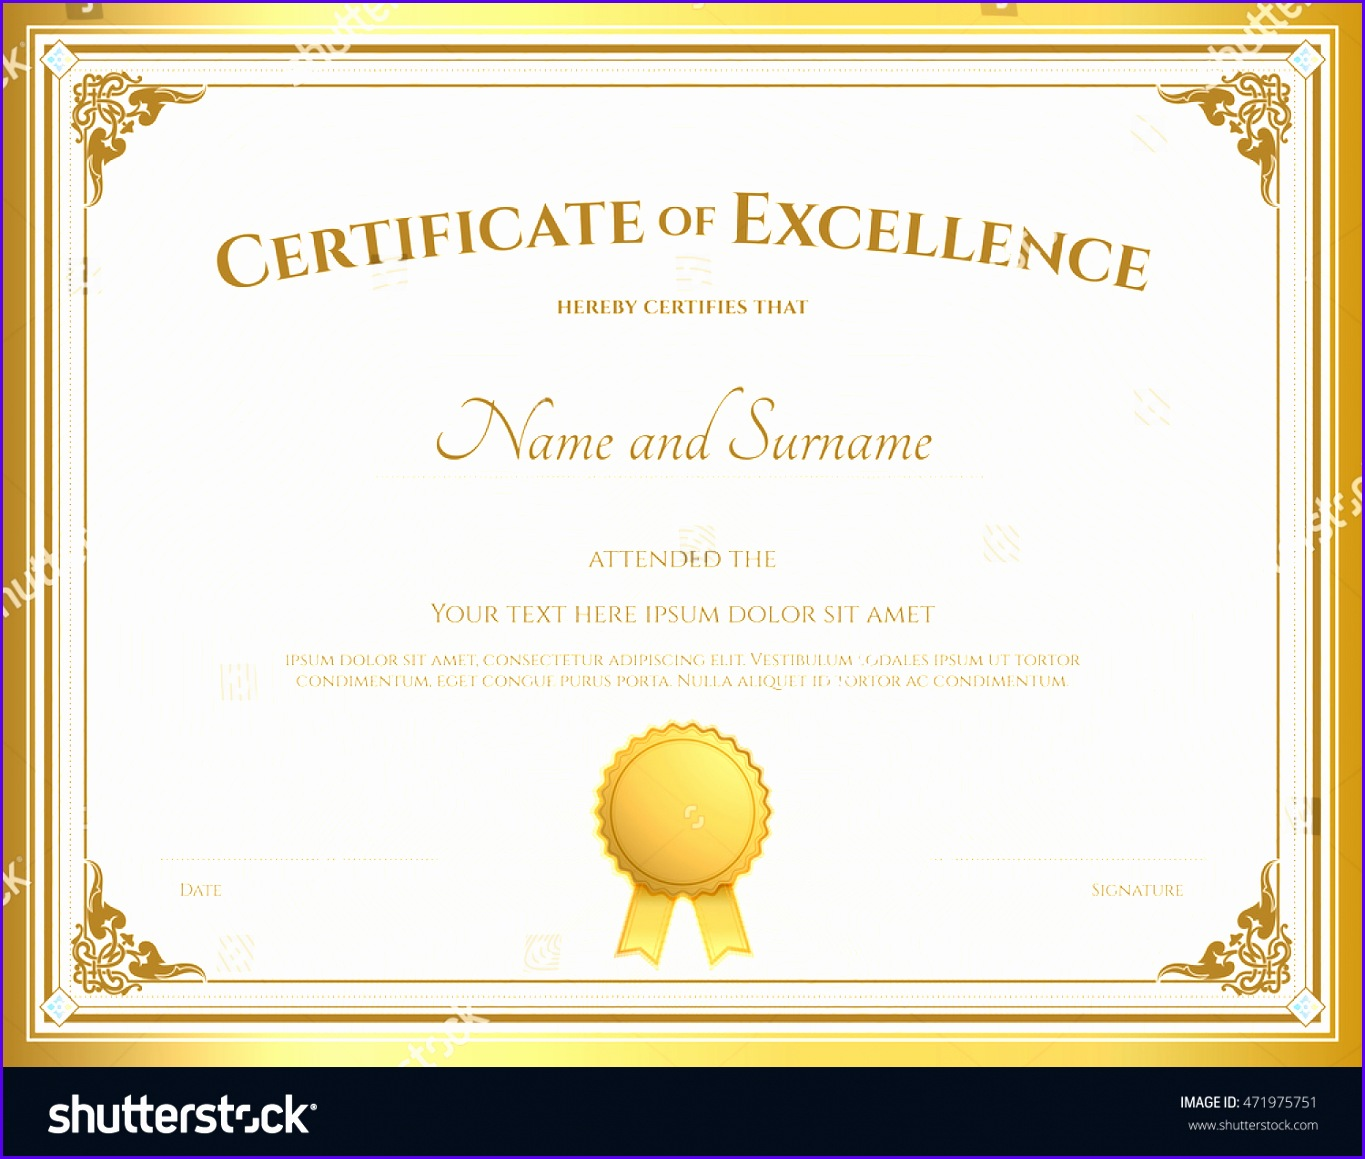 certificate of excellance 13651159